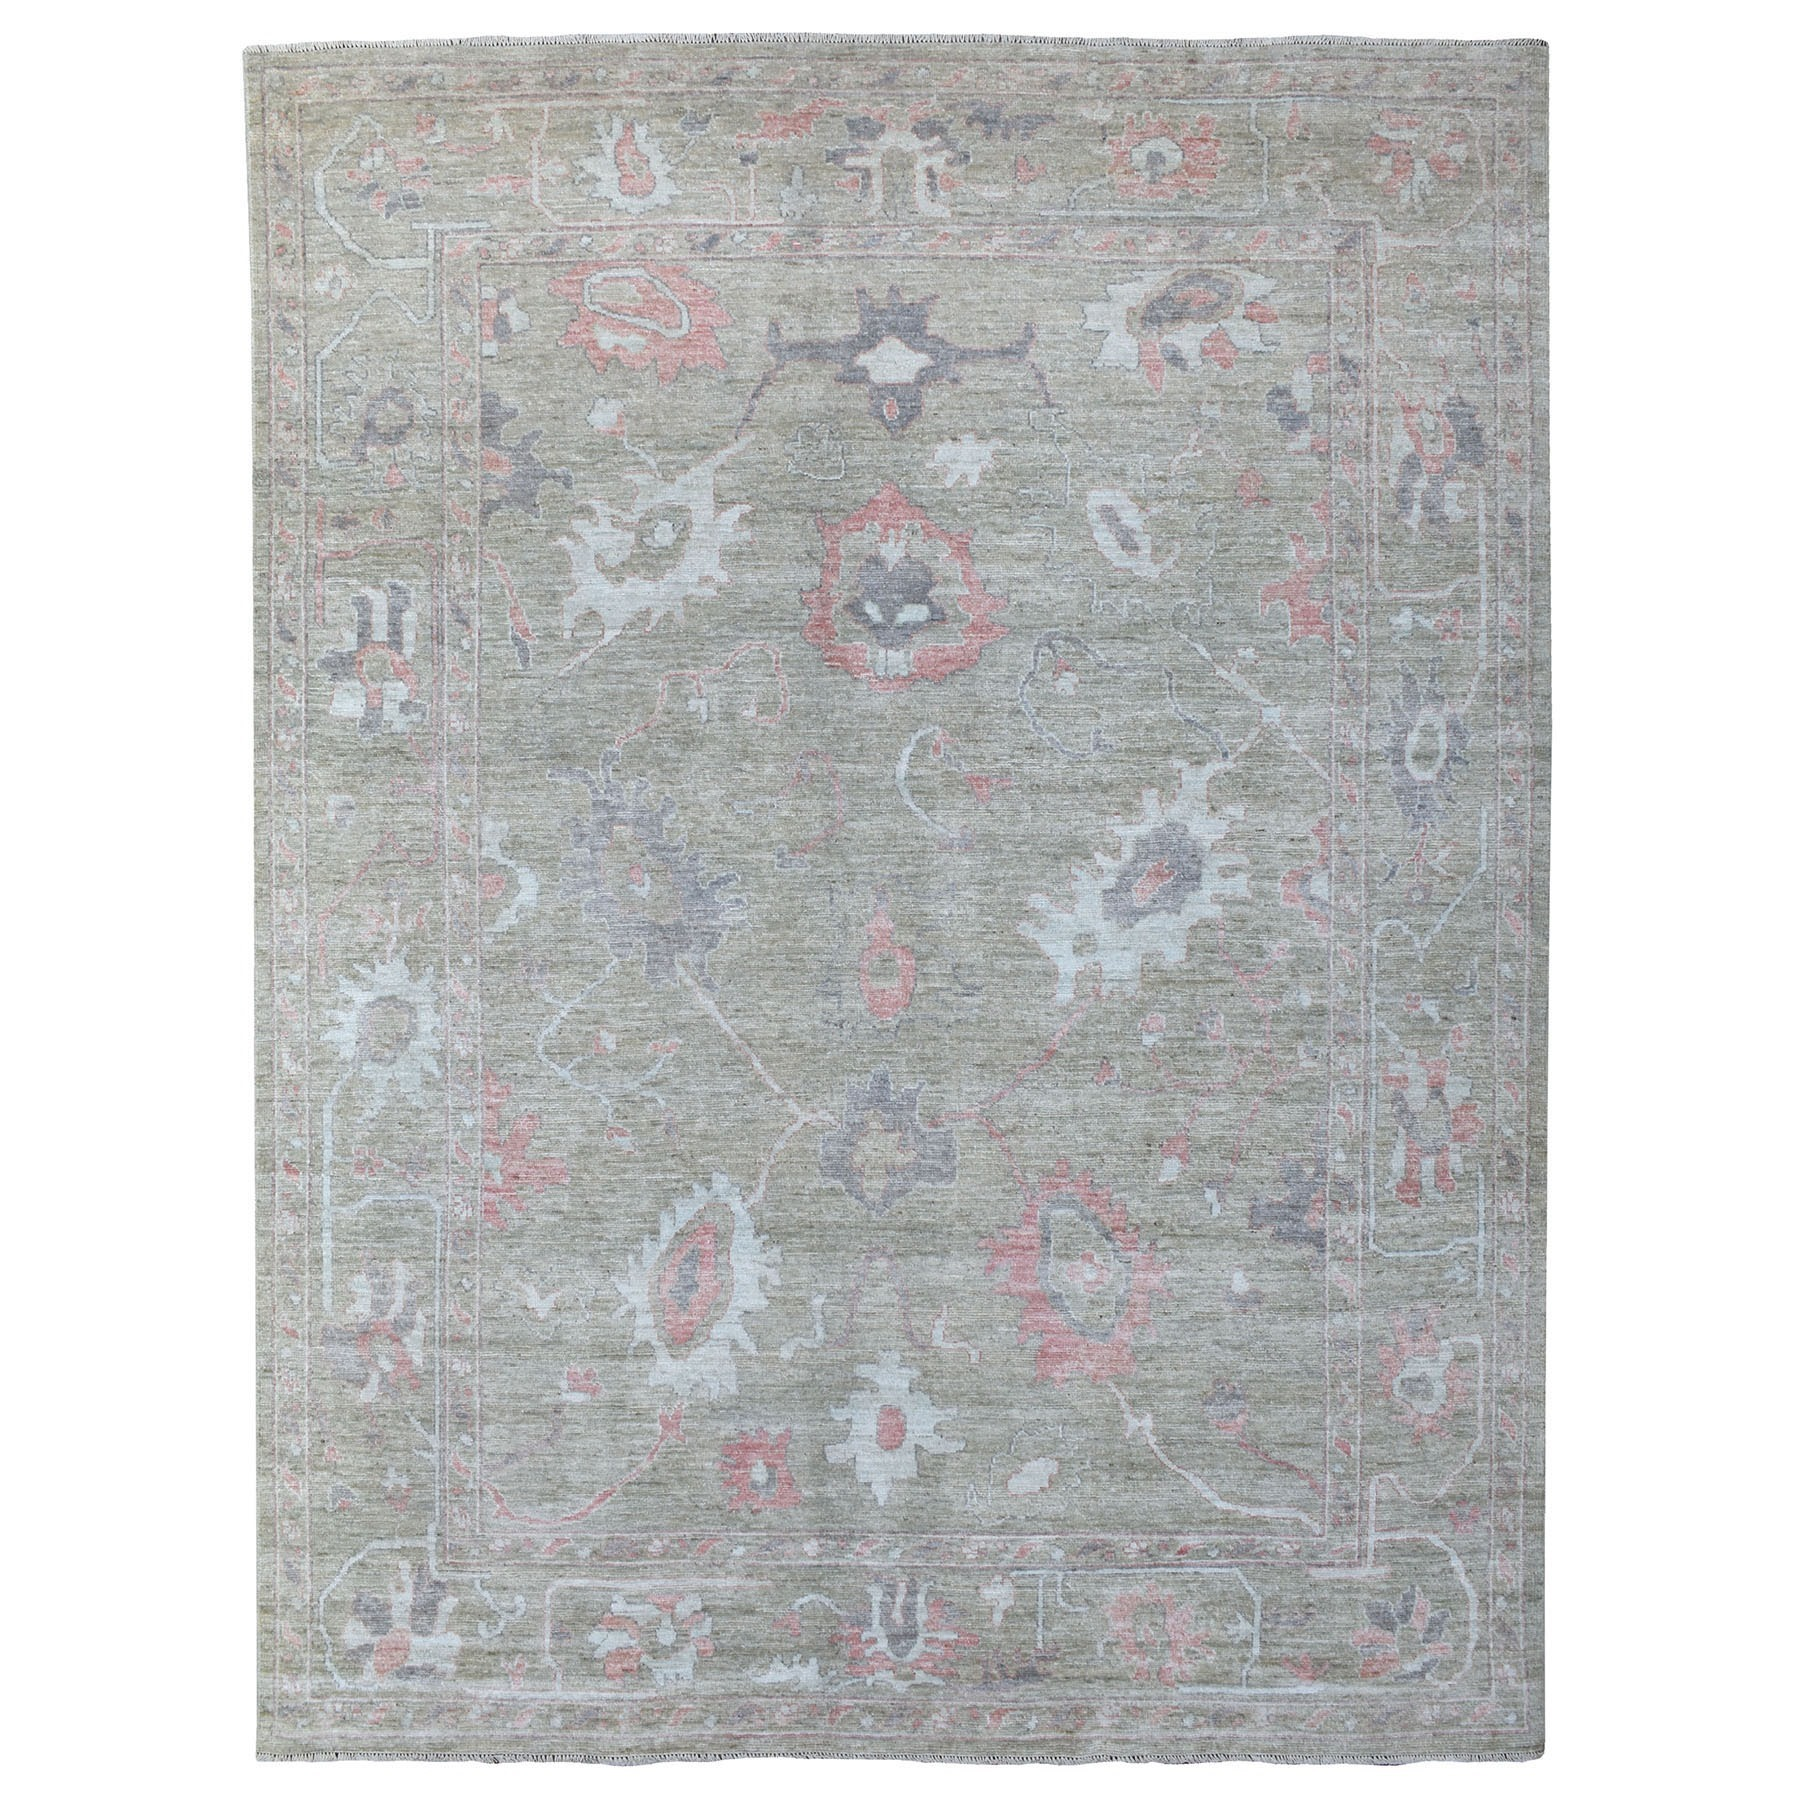 Oushak And Peshawar Rugs LUV609948